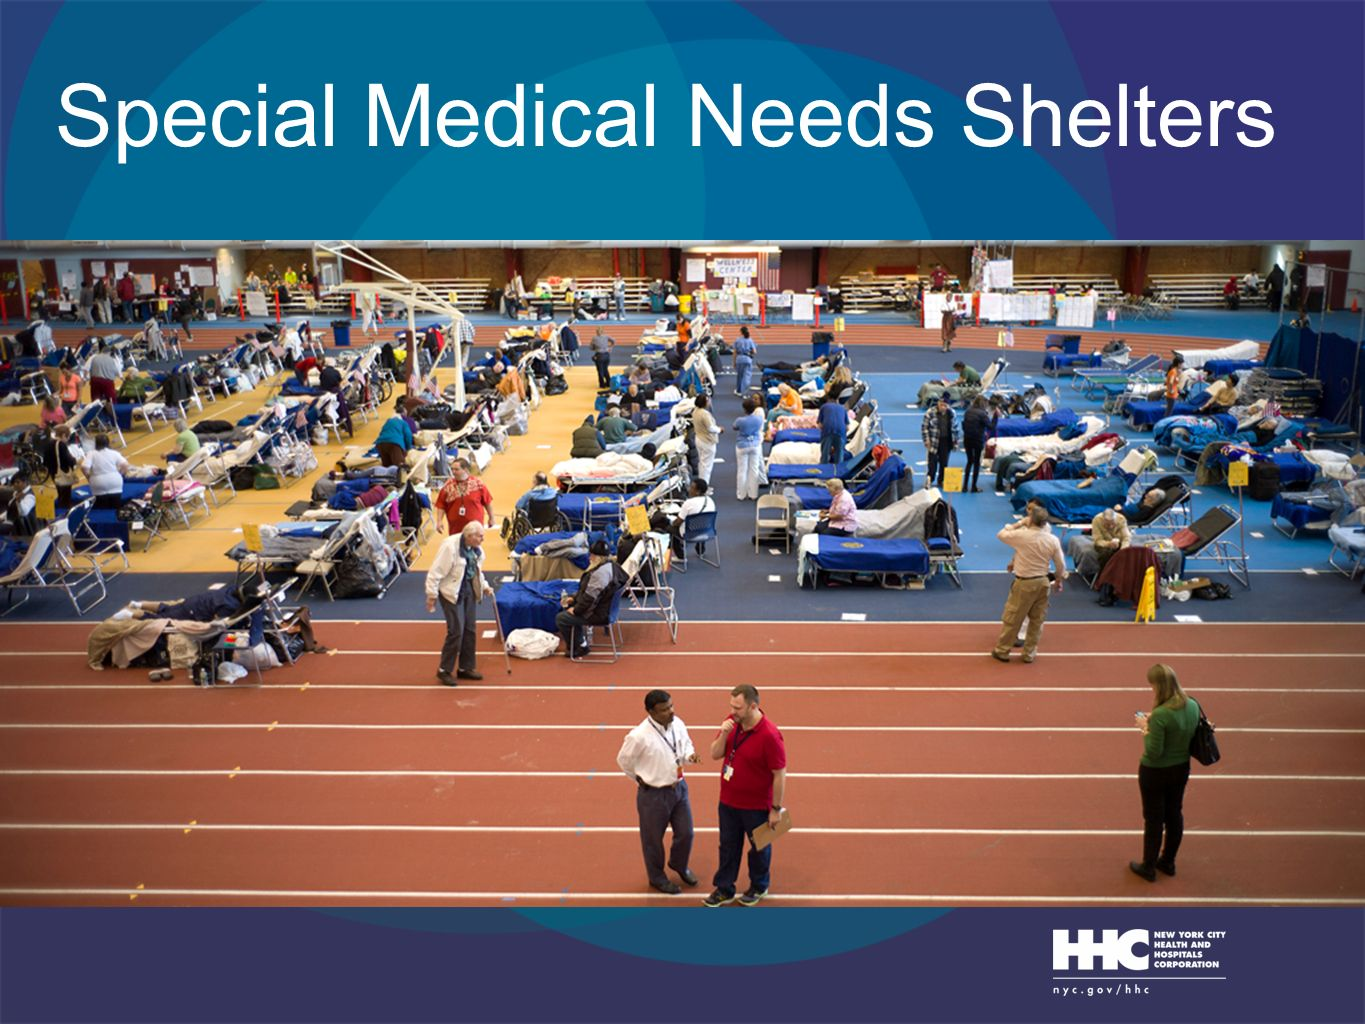 Special Medical Needs Shelters